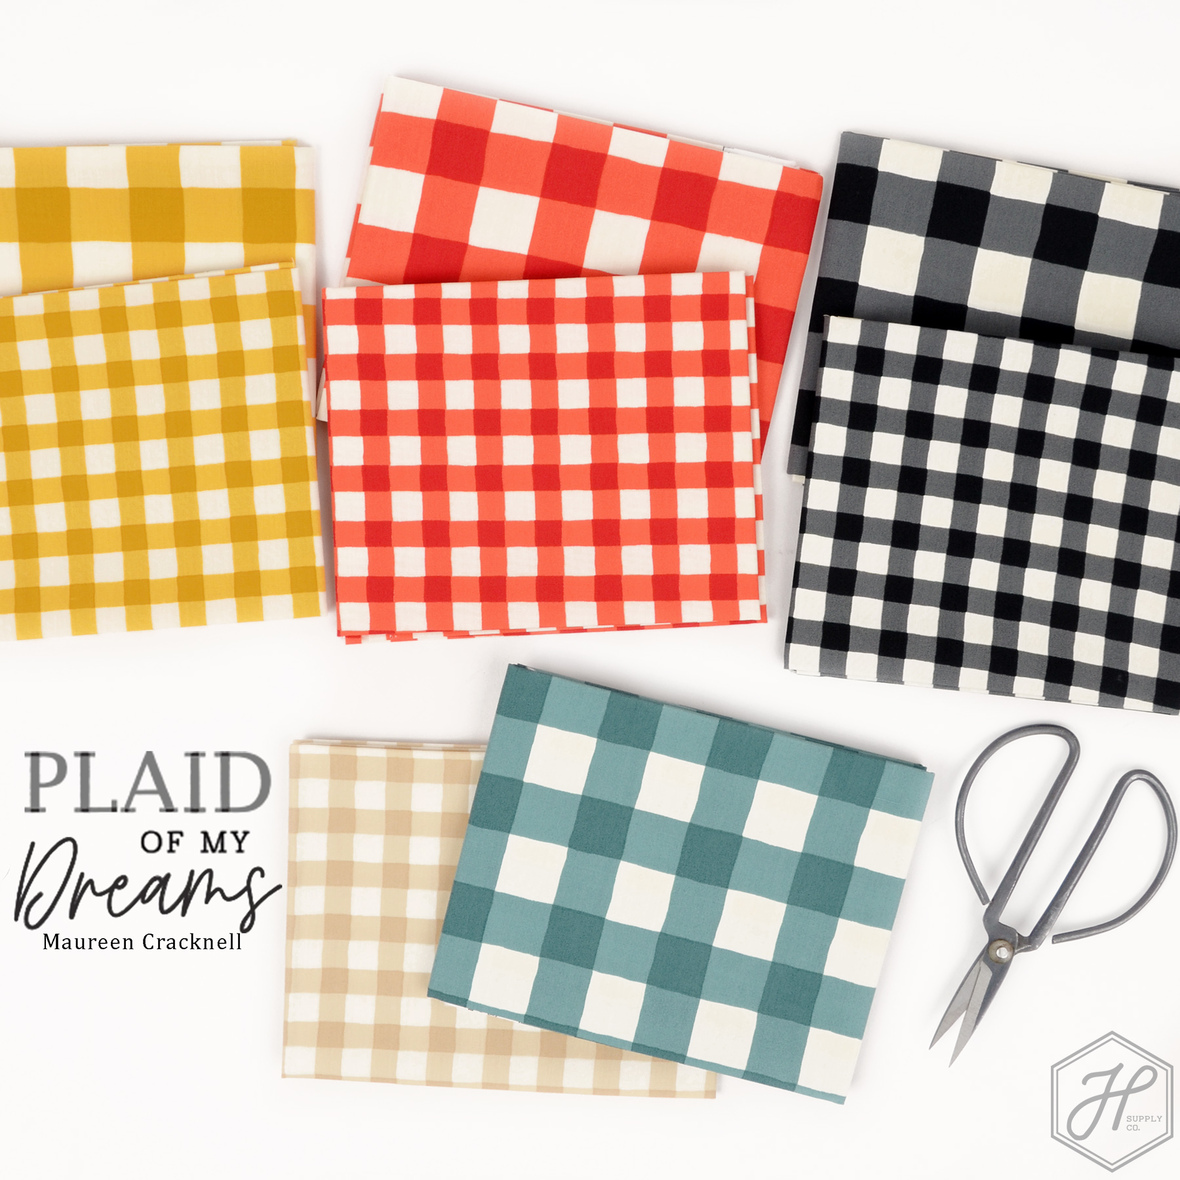 Plaid of My Dreams Fabric Maureen Cracknell for Art Gallery at Hawthorne Supply Co